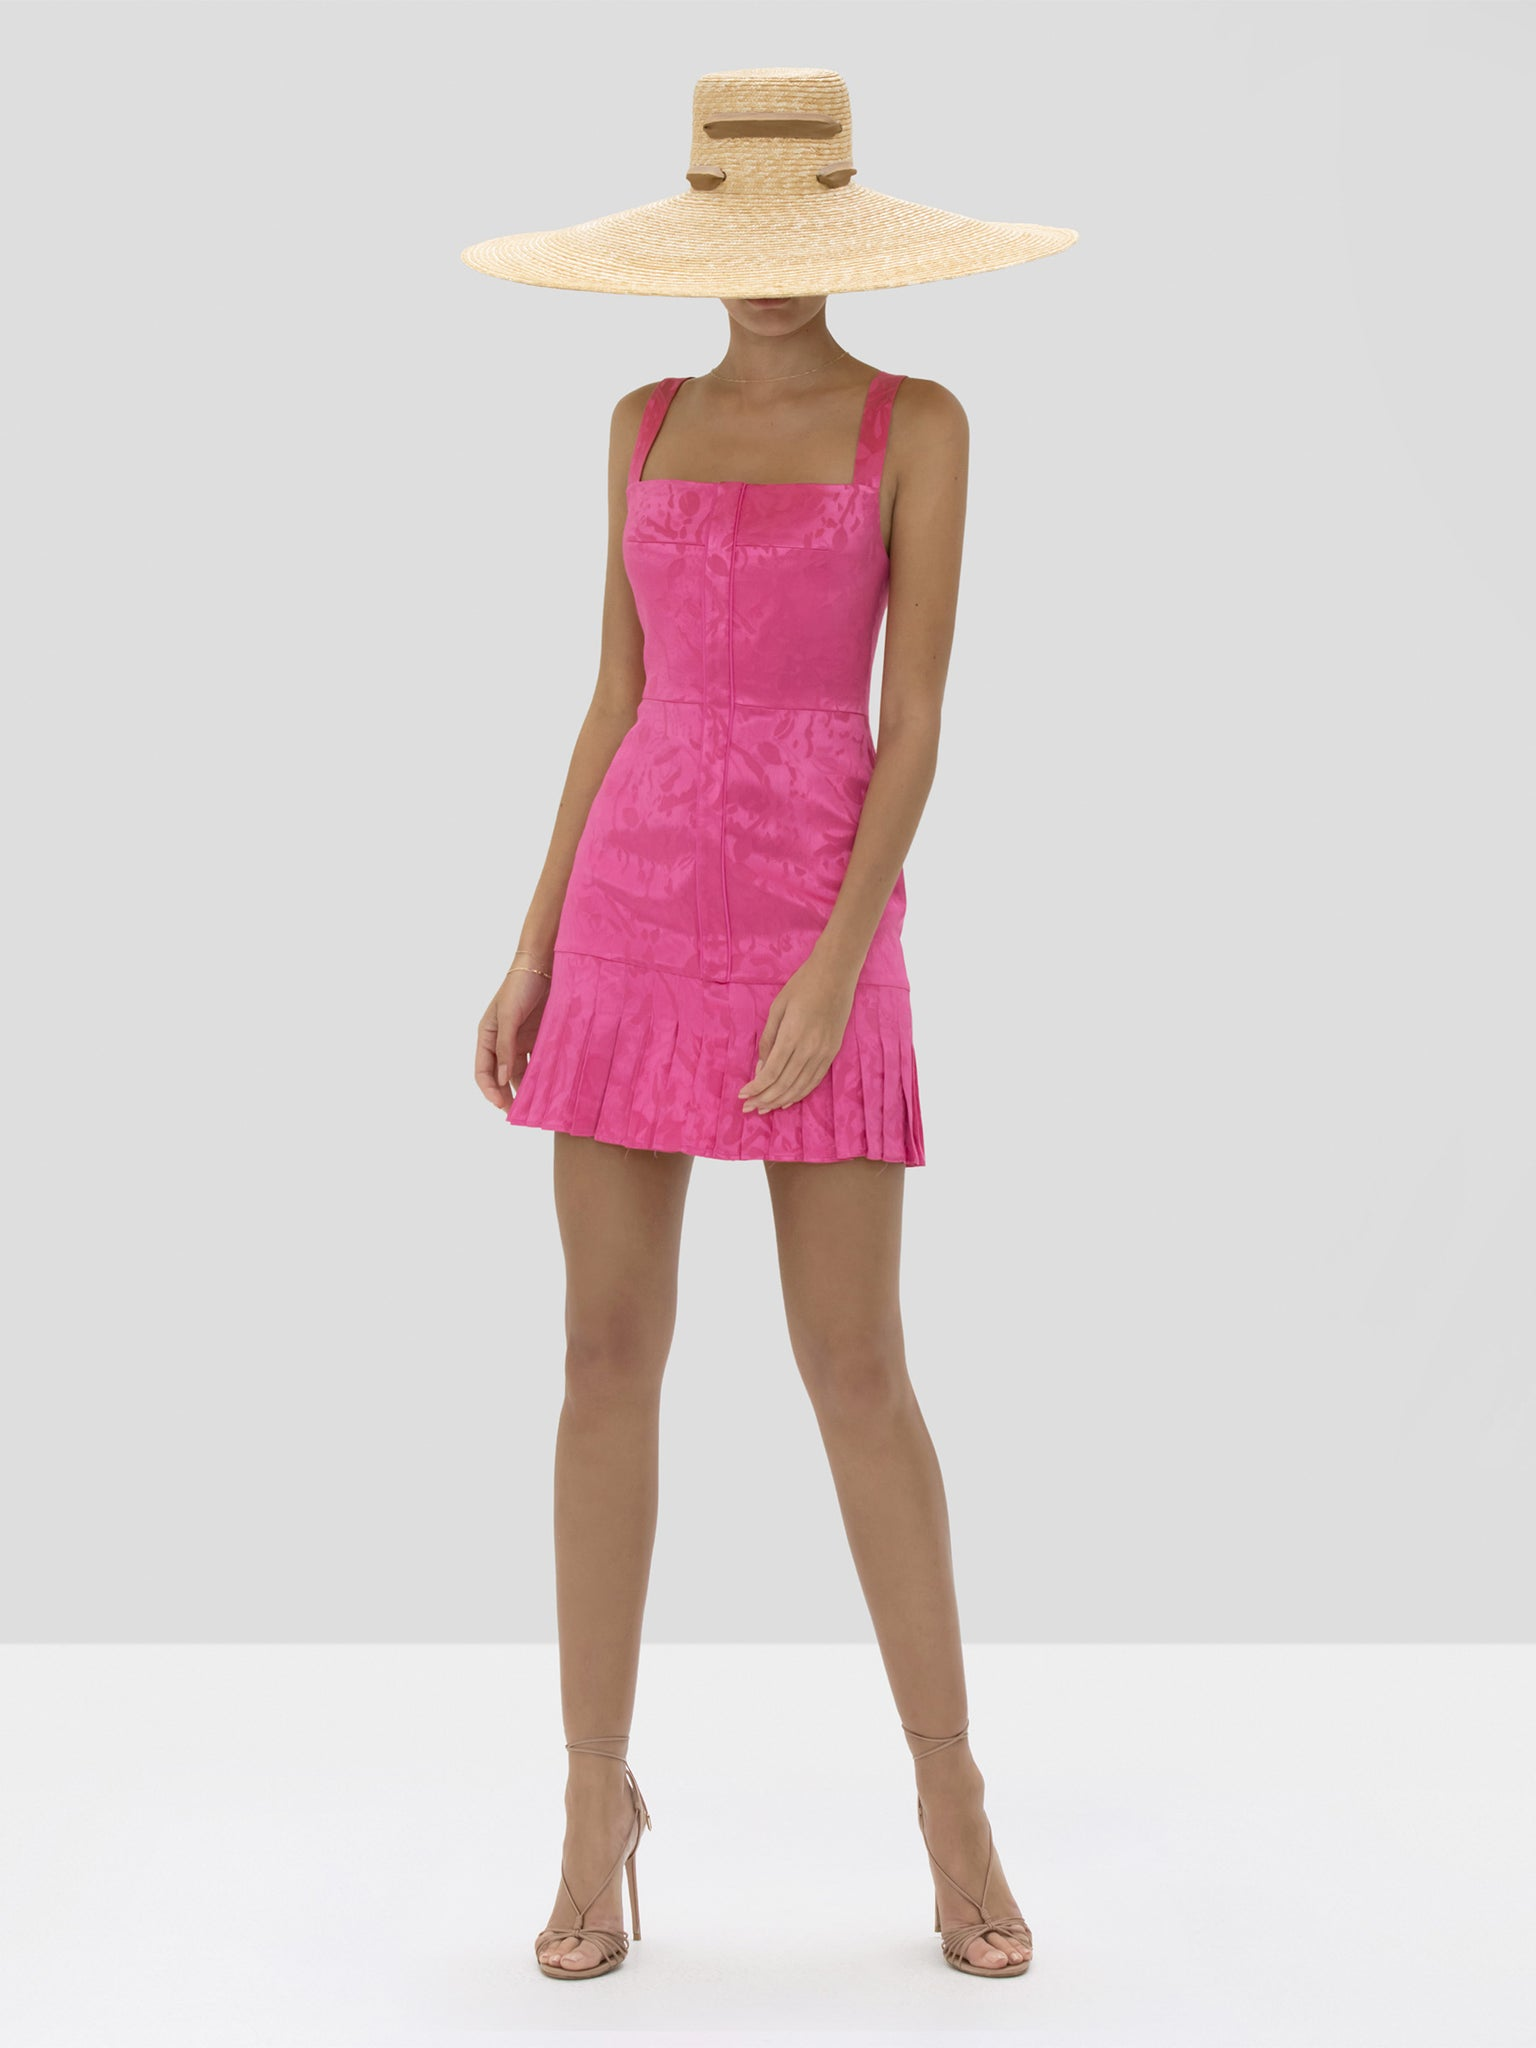 Alexis Alys Dress in Vivid Fuschia from Spring Summer 2020 Collection